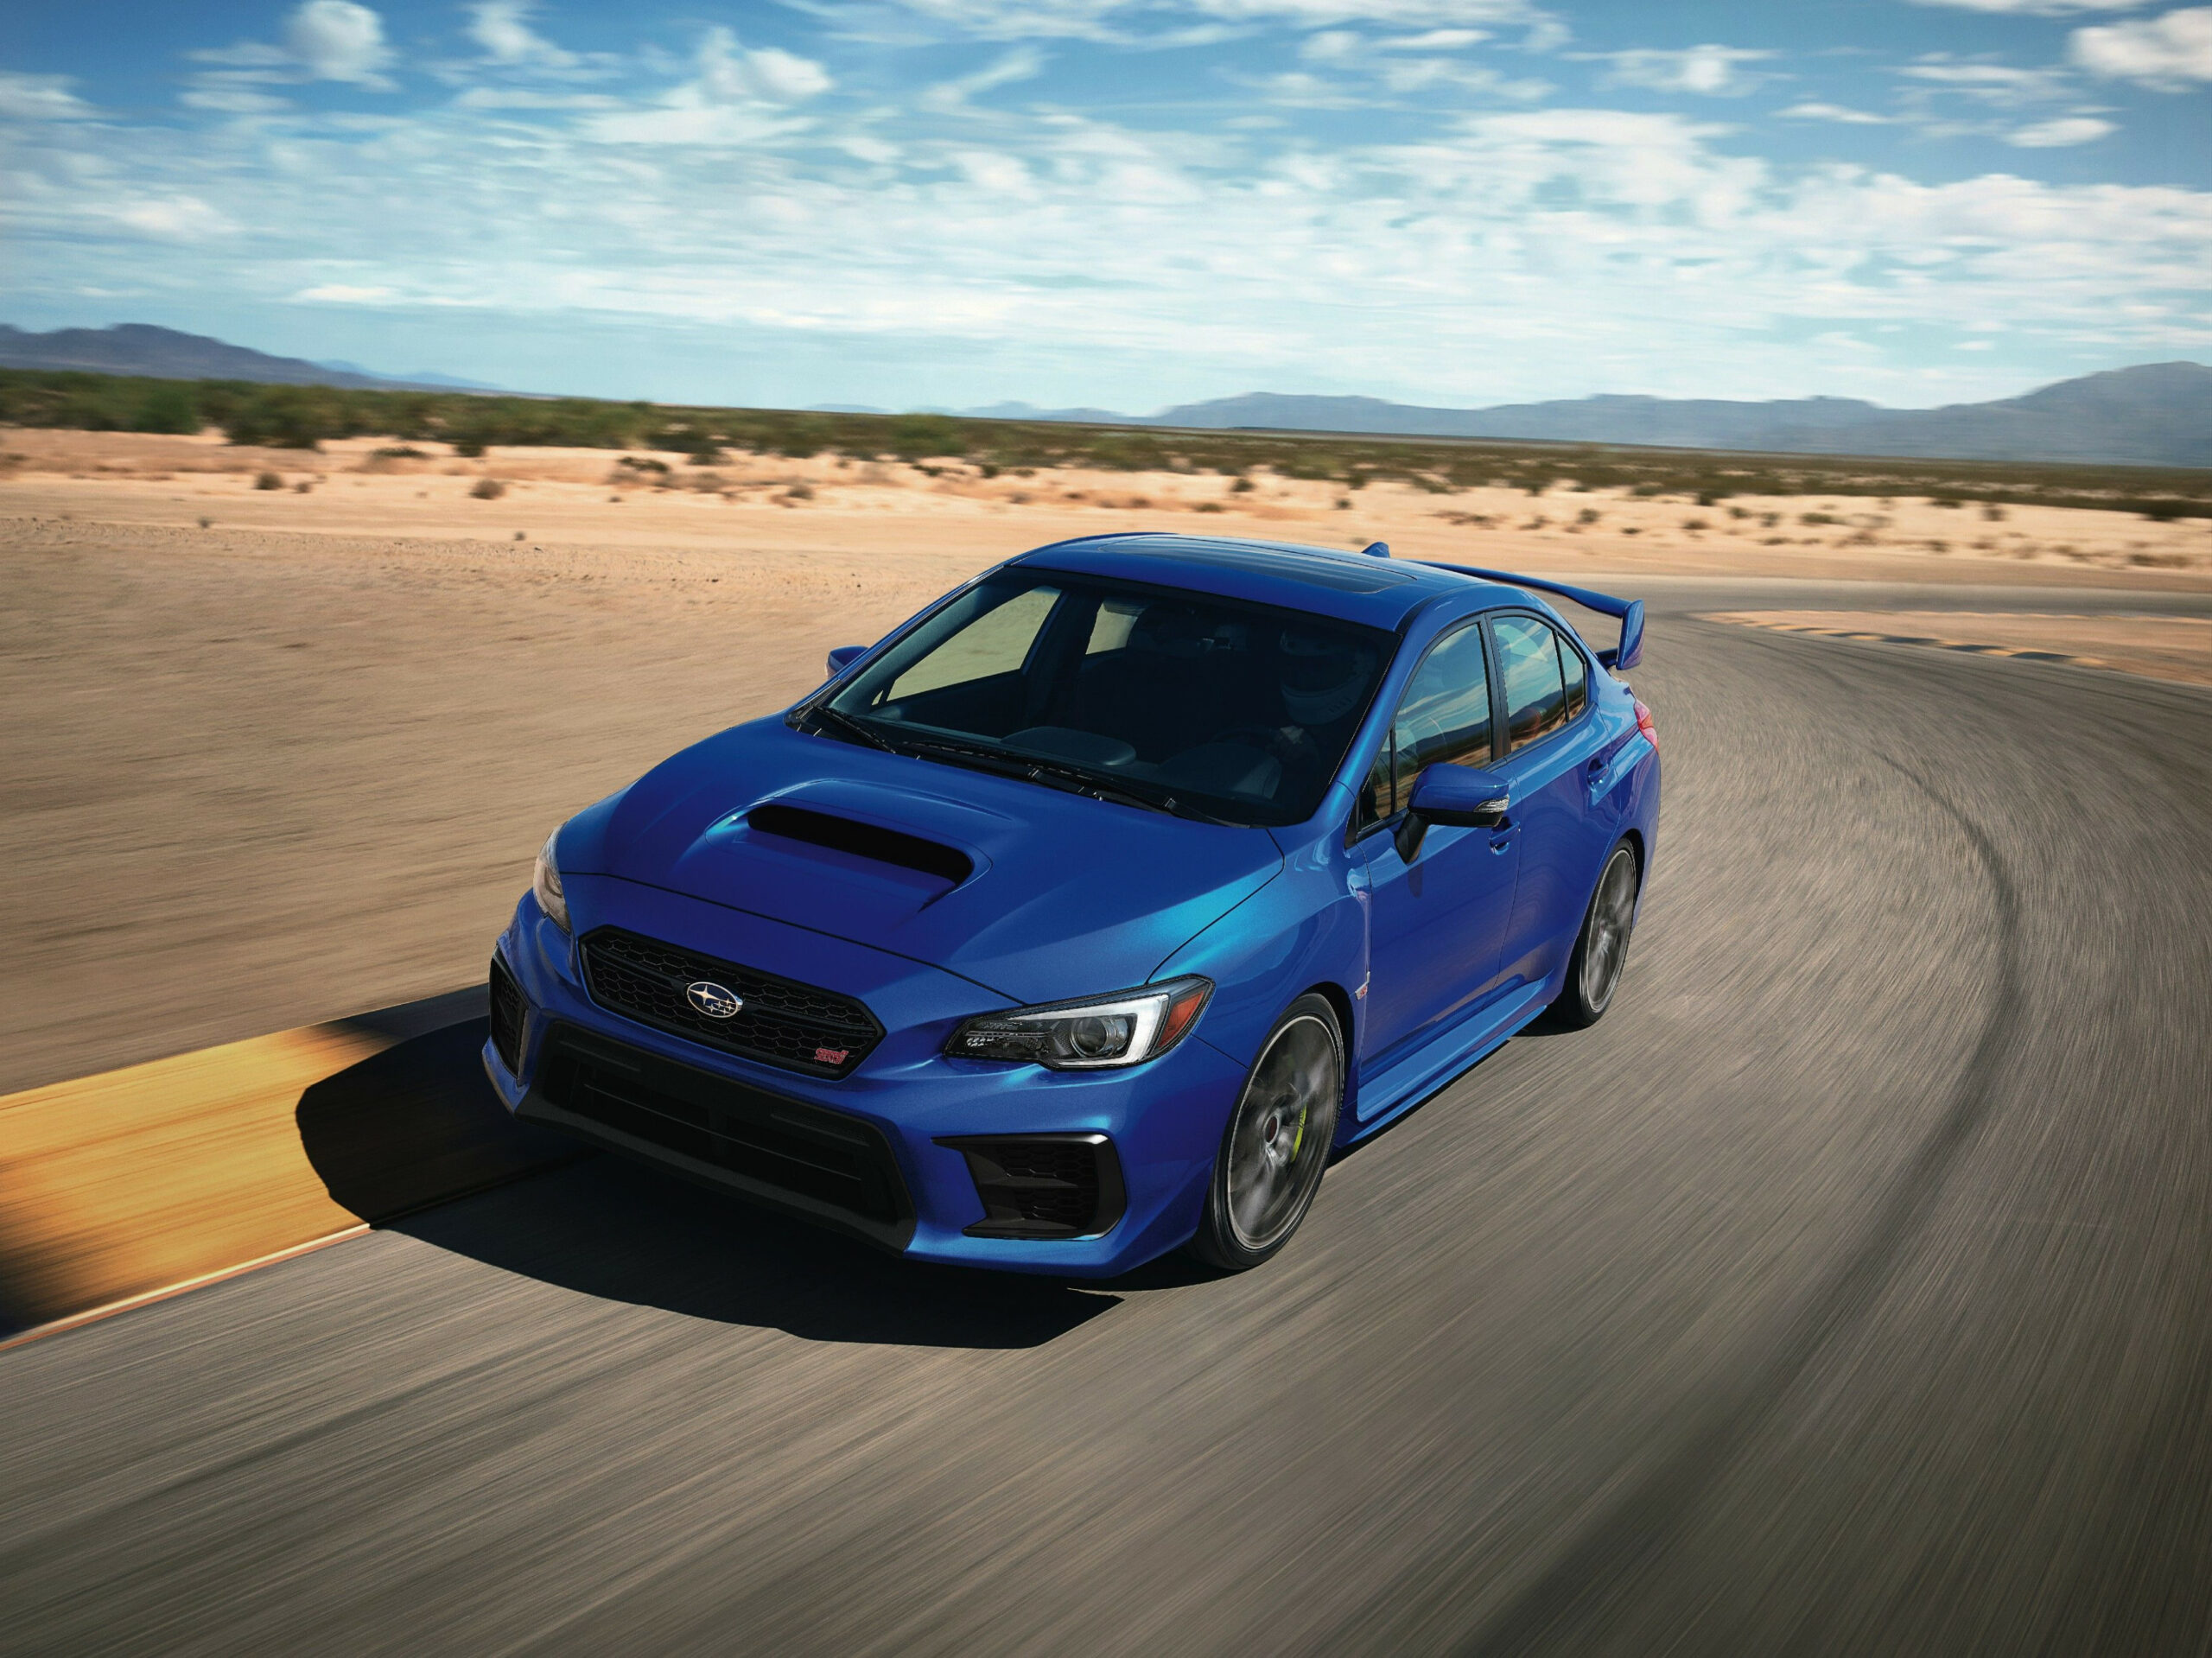 9 Subaru WRX STI Review, Pricing, and Specs - subaru cars 2020